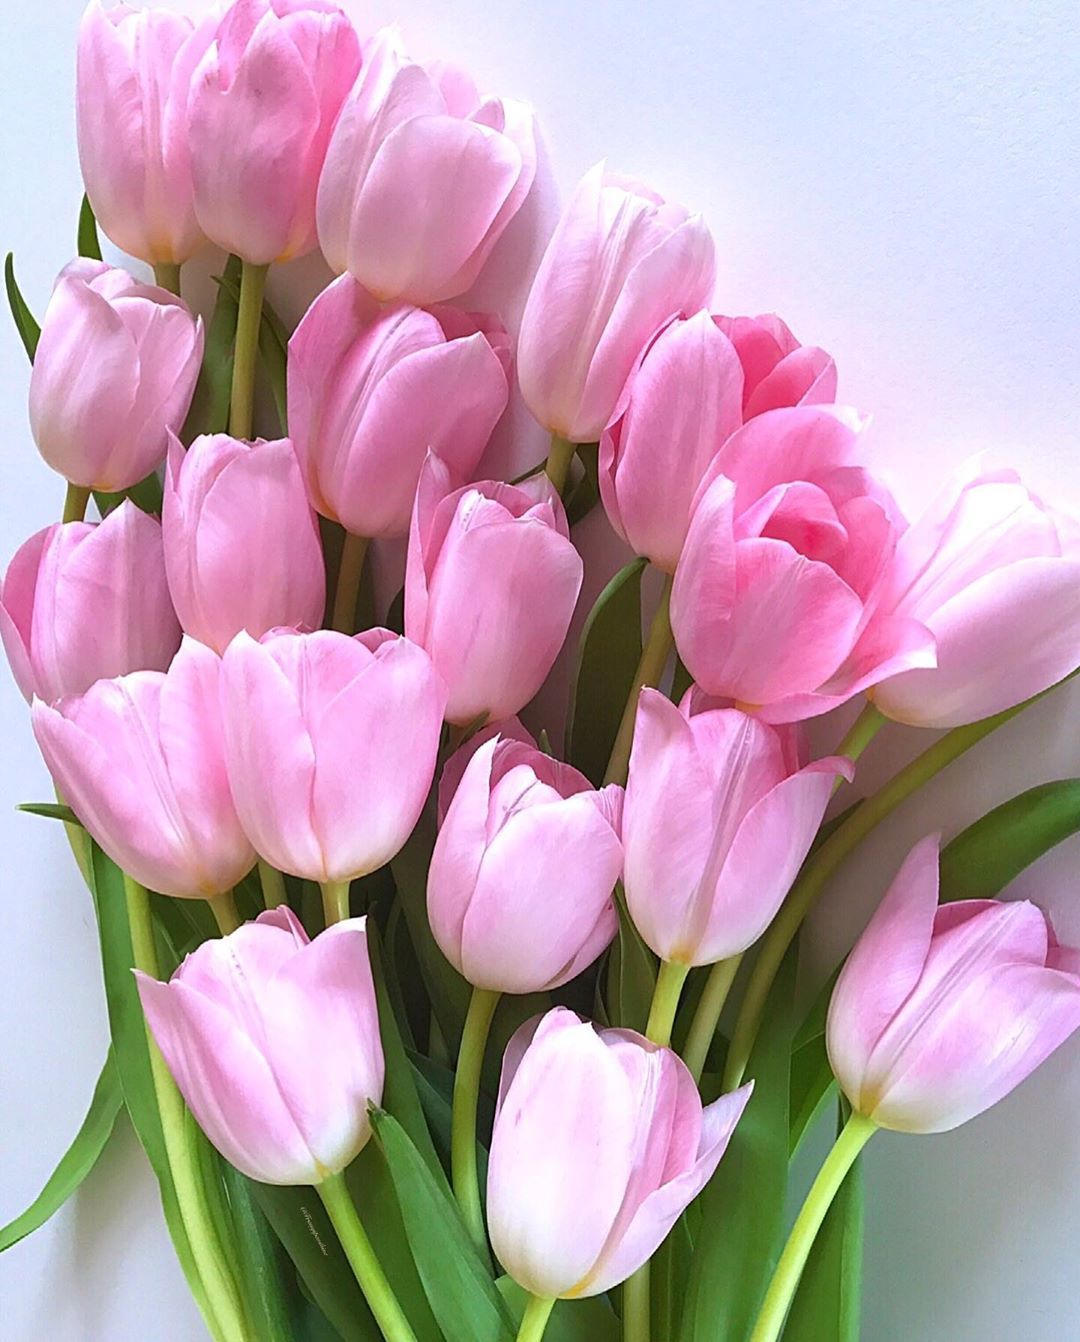 Good Morning I Love Tulips Have A Nice Sunday My Dear Friends Ptk Flowers In 2020 Beautiful Pink Flowers Beautiful Flowers Tulips Flowers